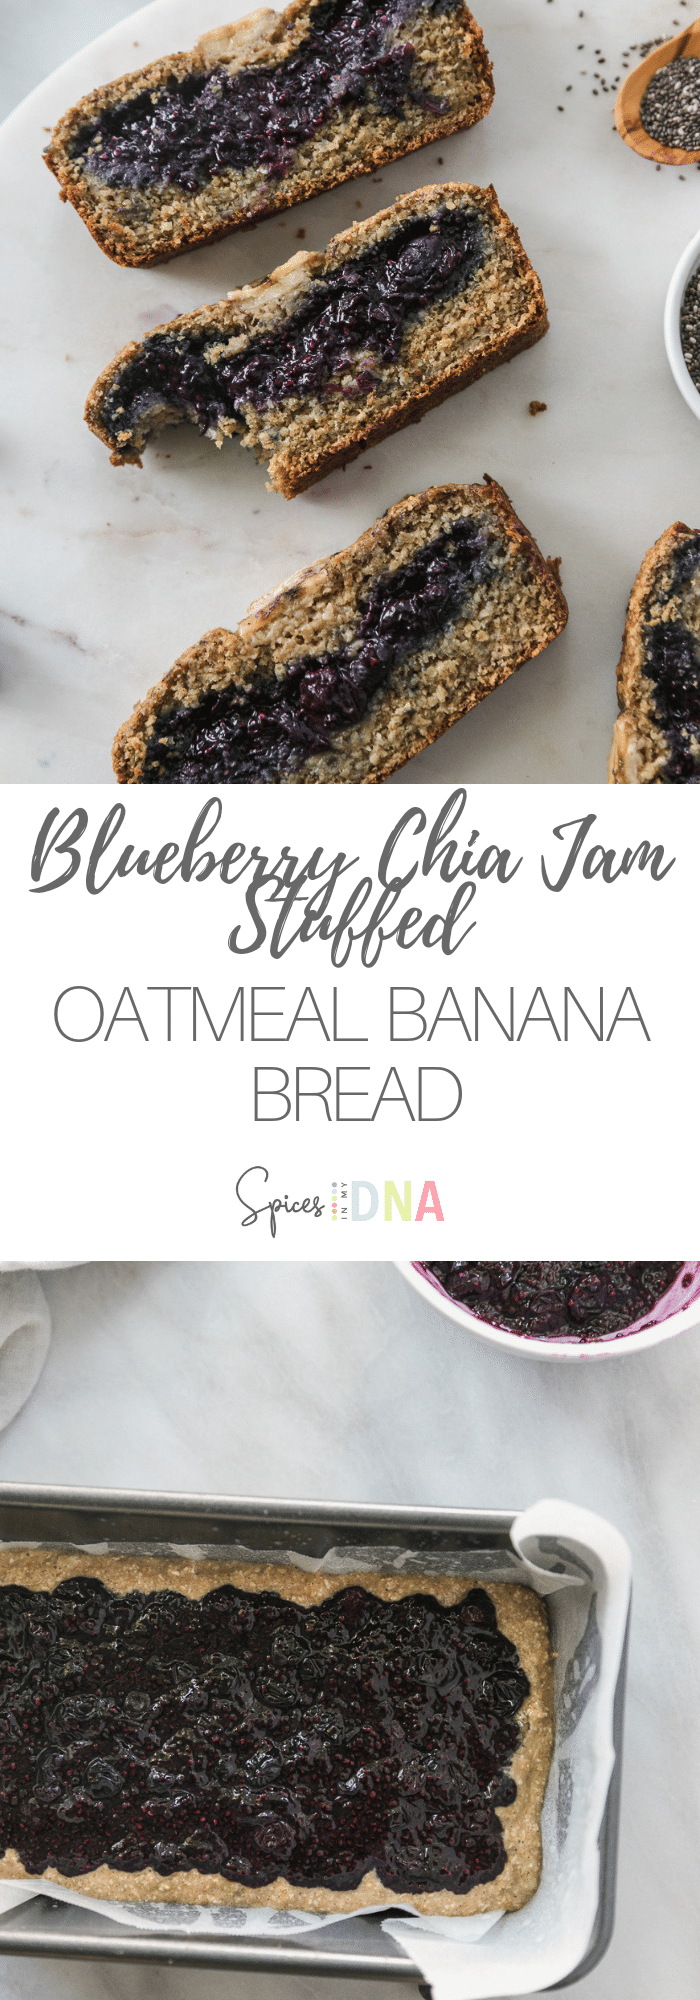 This Blueberry Chia Jam Stuffed Oatmeal Banana Bread is completely flourless and made with just oats! It's sweetened with pure maple syrup, and it's stuffed with a super delicious, quick homemade blueberry chia jam. This bread is a perfect healthy breakfast or afternoon treat! #bananabread #flourless #oatmeal #glutenfree